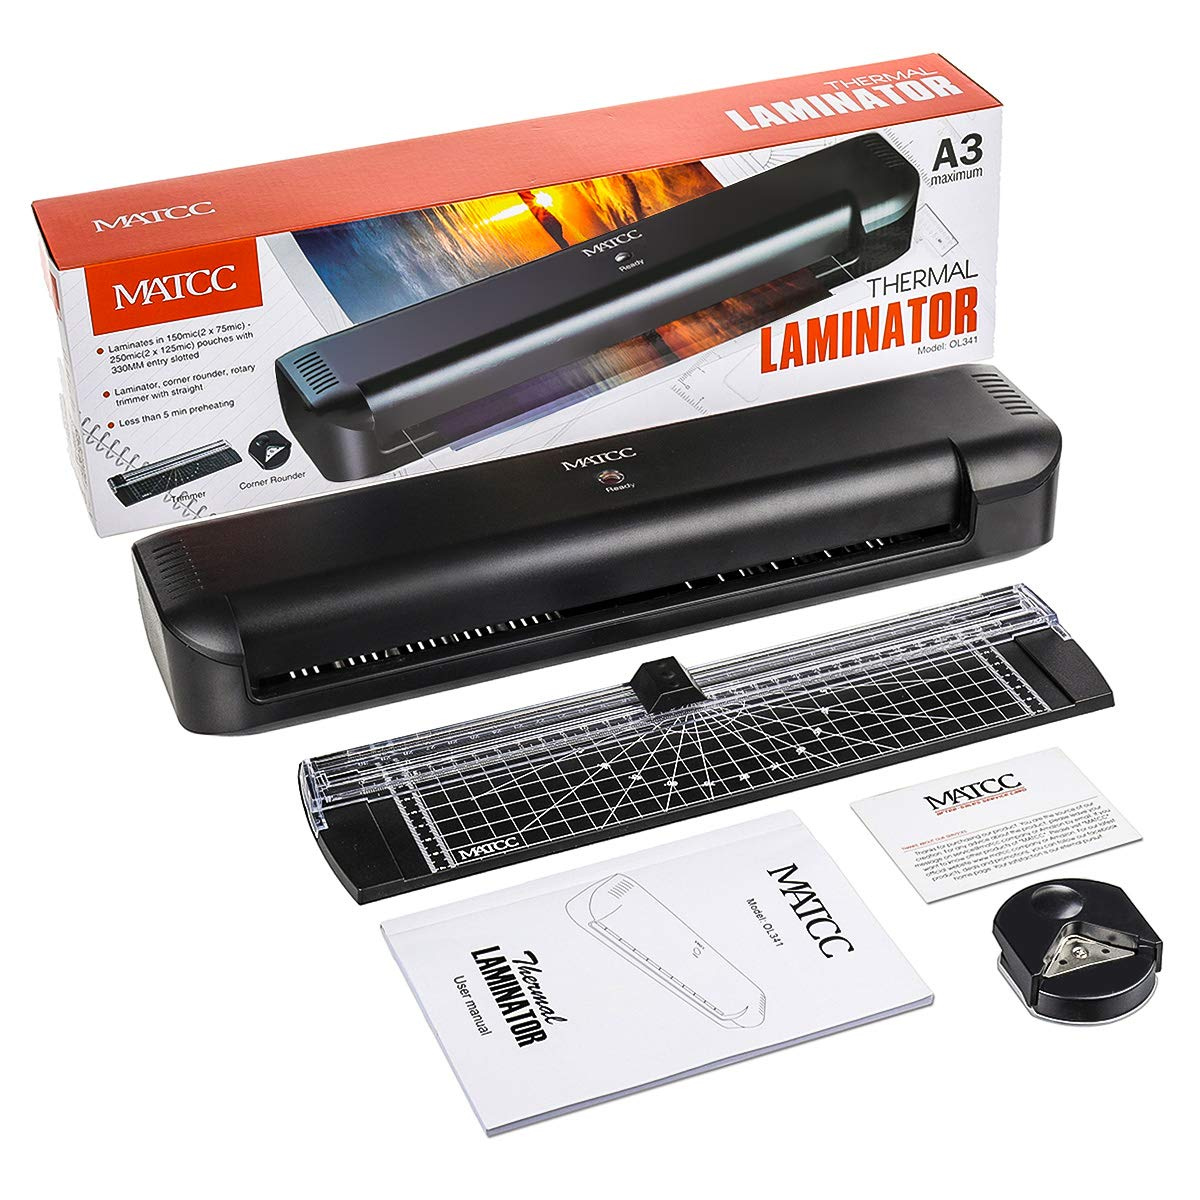 MATCC 13'' Thermal Laminator Machine for A3/A4/A6 Laminating Machine with Paper Cutter and Corner Rounder 2 Roller System Laminator Machine Faster Warm-up Quick Laminating Speed Suit for Home Art by MATCC (Image #7)